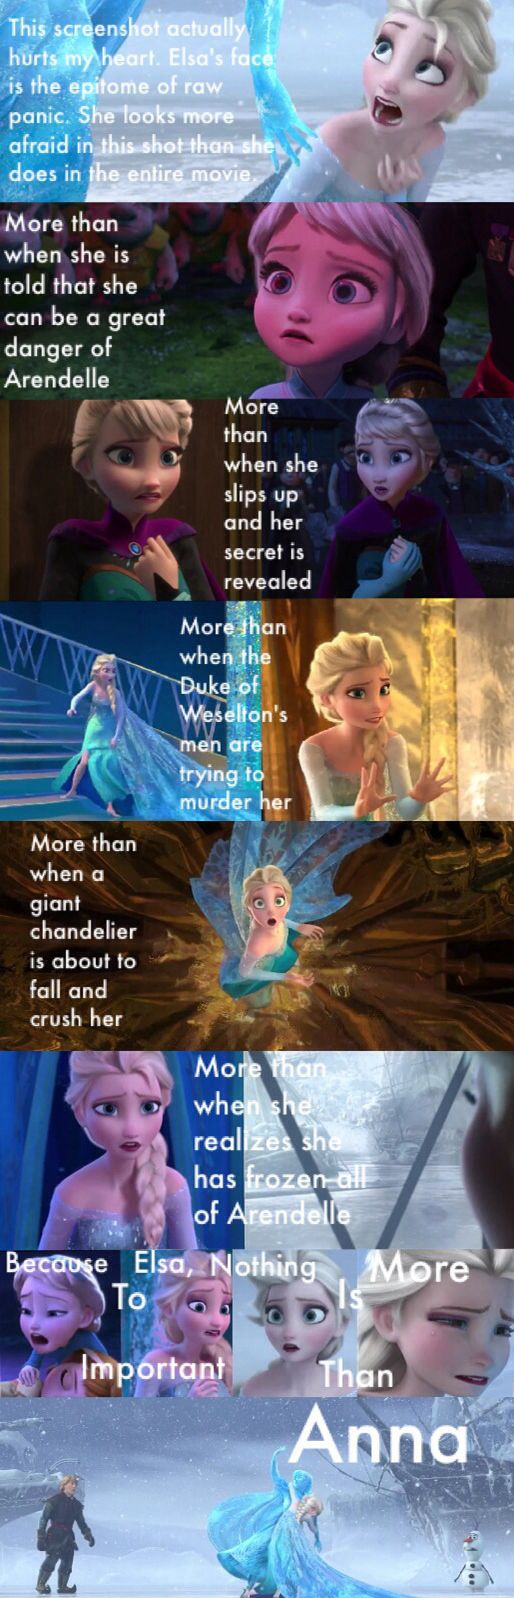 Because to Elsa, nothing is more important than Anna... The feels! →even though I think she was more scared the first time she struck her